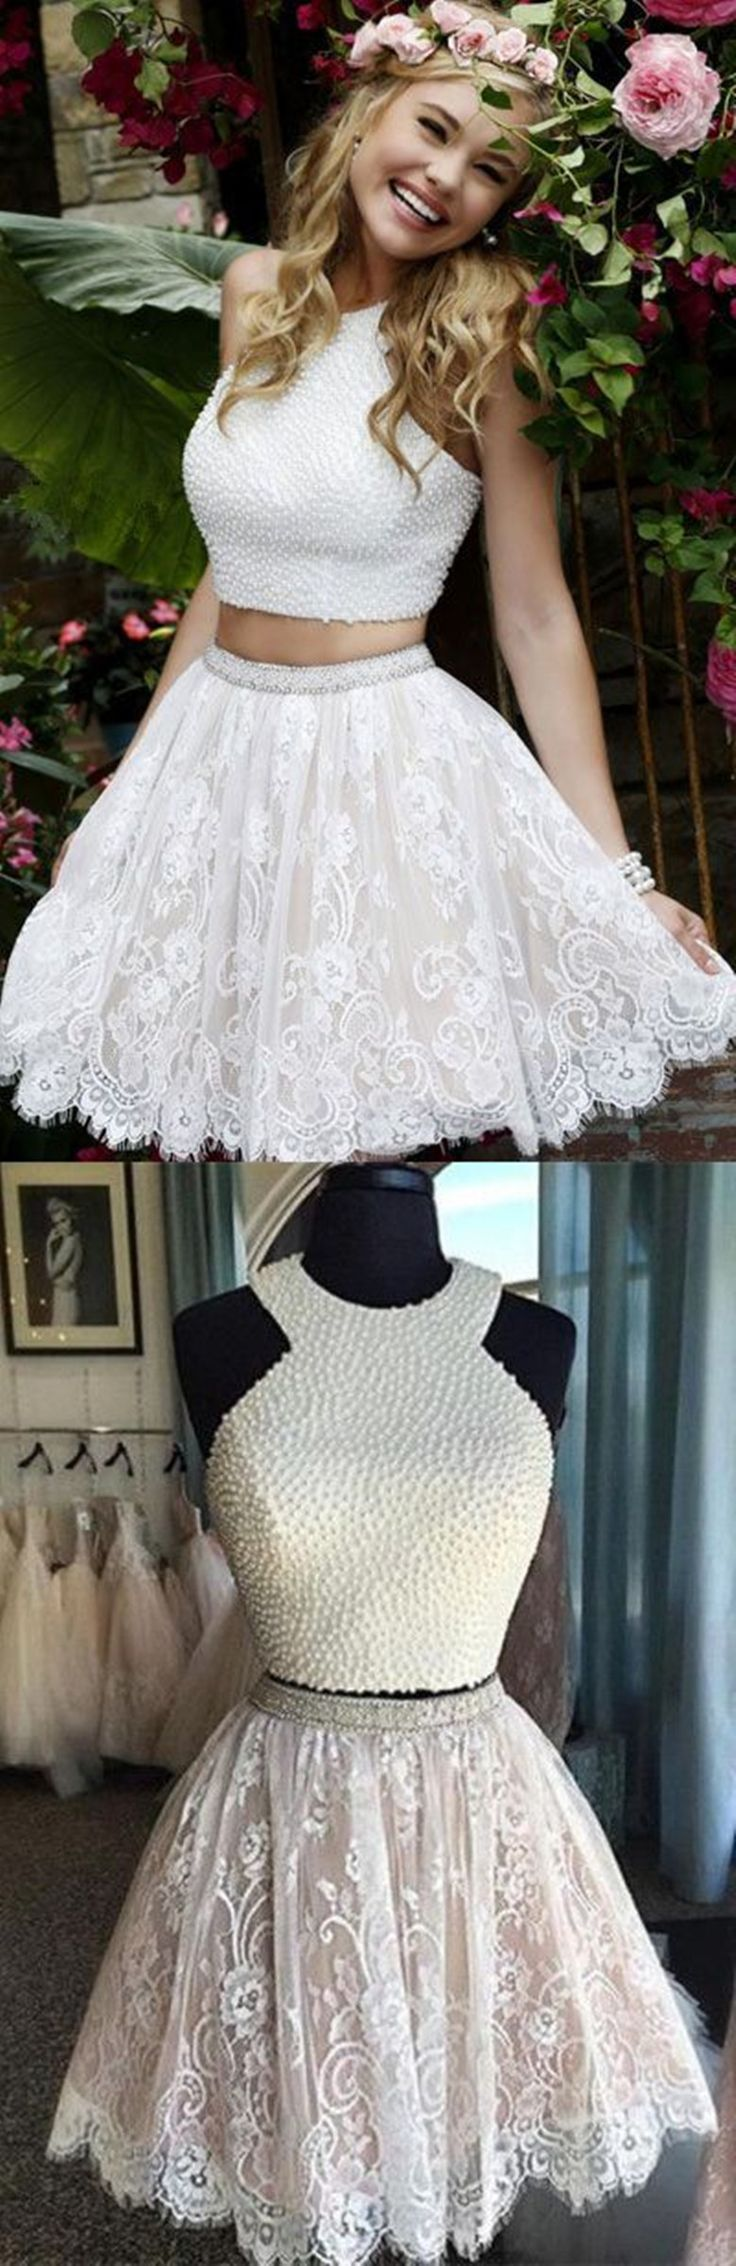 2016 homecoming dress,white homecoming dresses,homecoming dresses,back to school dress,two-piece homecoming dresses,modest homecoming dresses,lace homecoming dresses,charming homecoming dresses